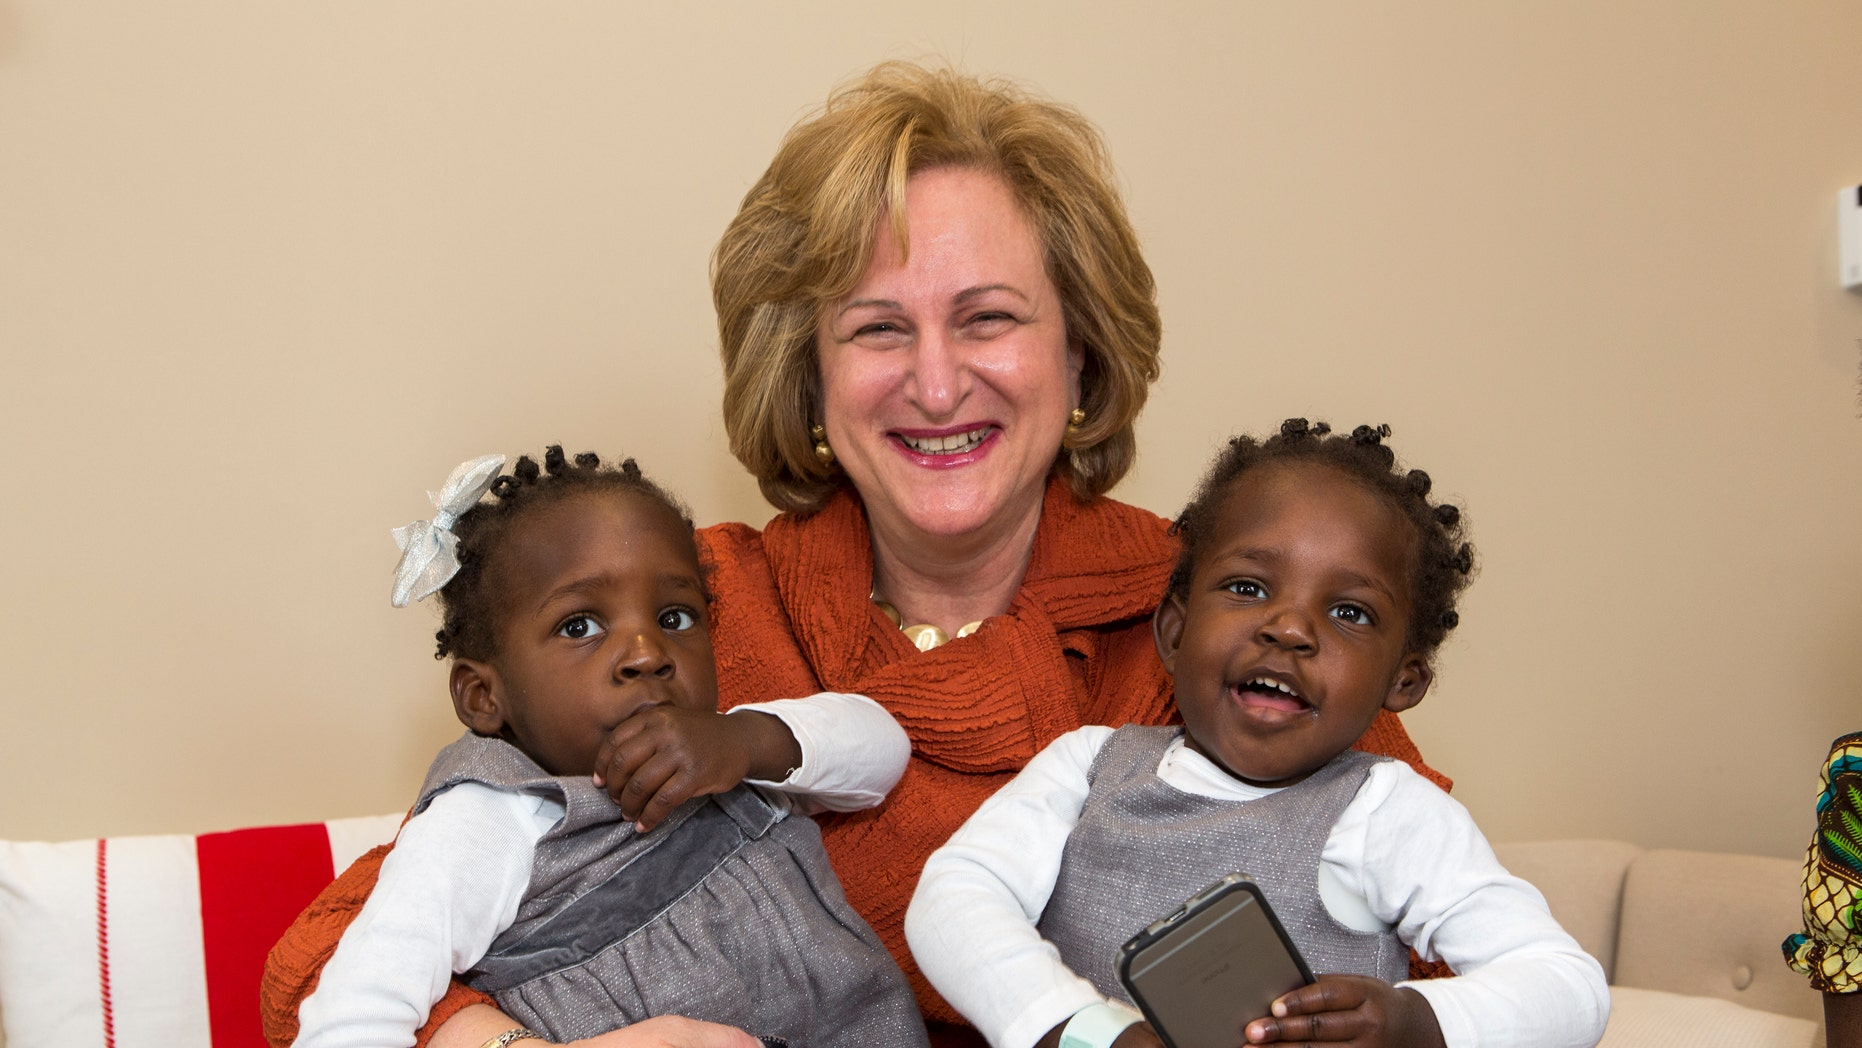 Dr. Gail Besner, chief of Pediatric Surgery, led a team at Nationwide Children`s Hospital to separate these formerly conjoined twins in 2015. Today, she`s proud of their recovery and loves their individual, special personalities.